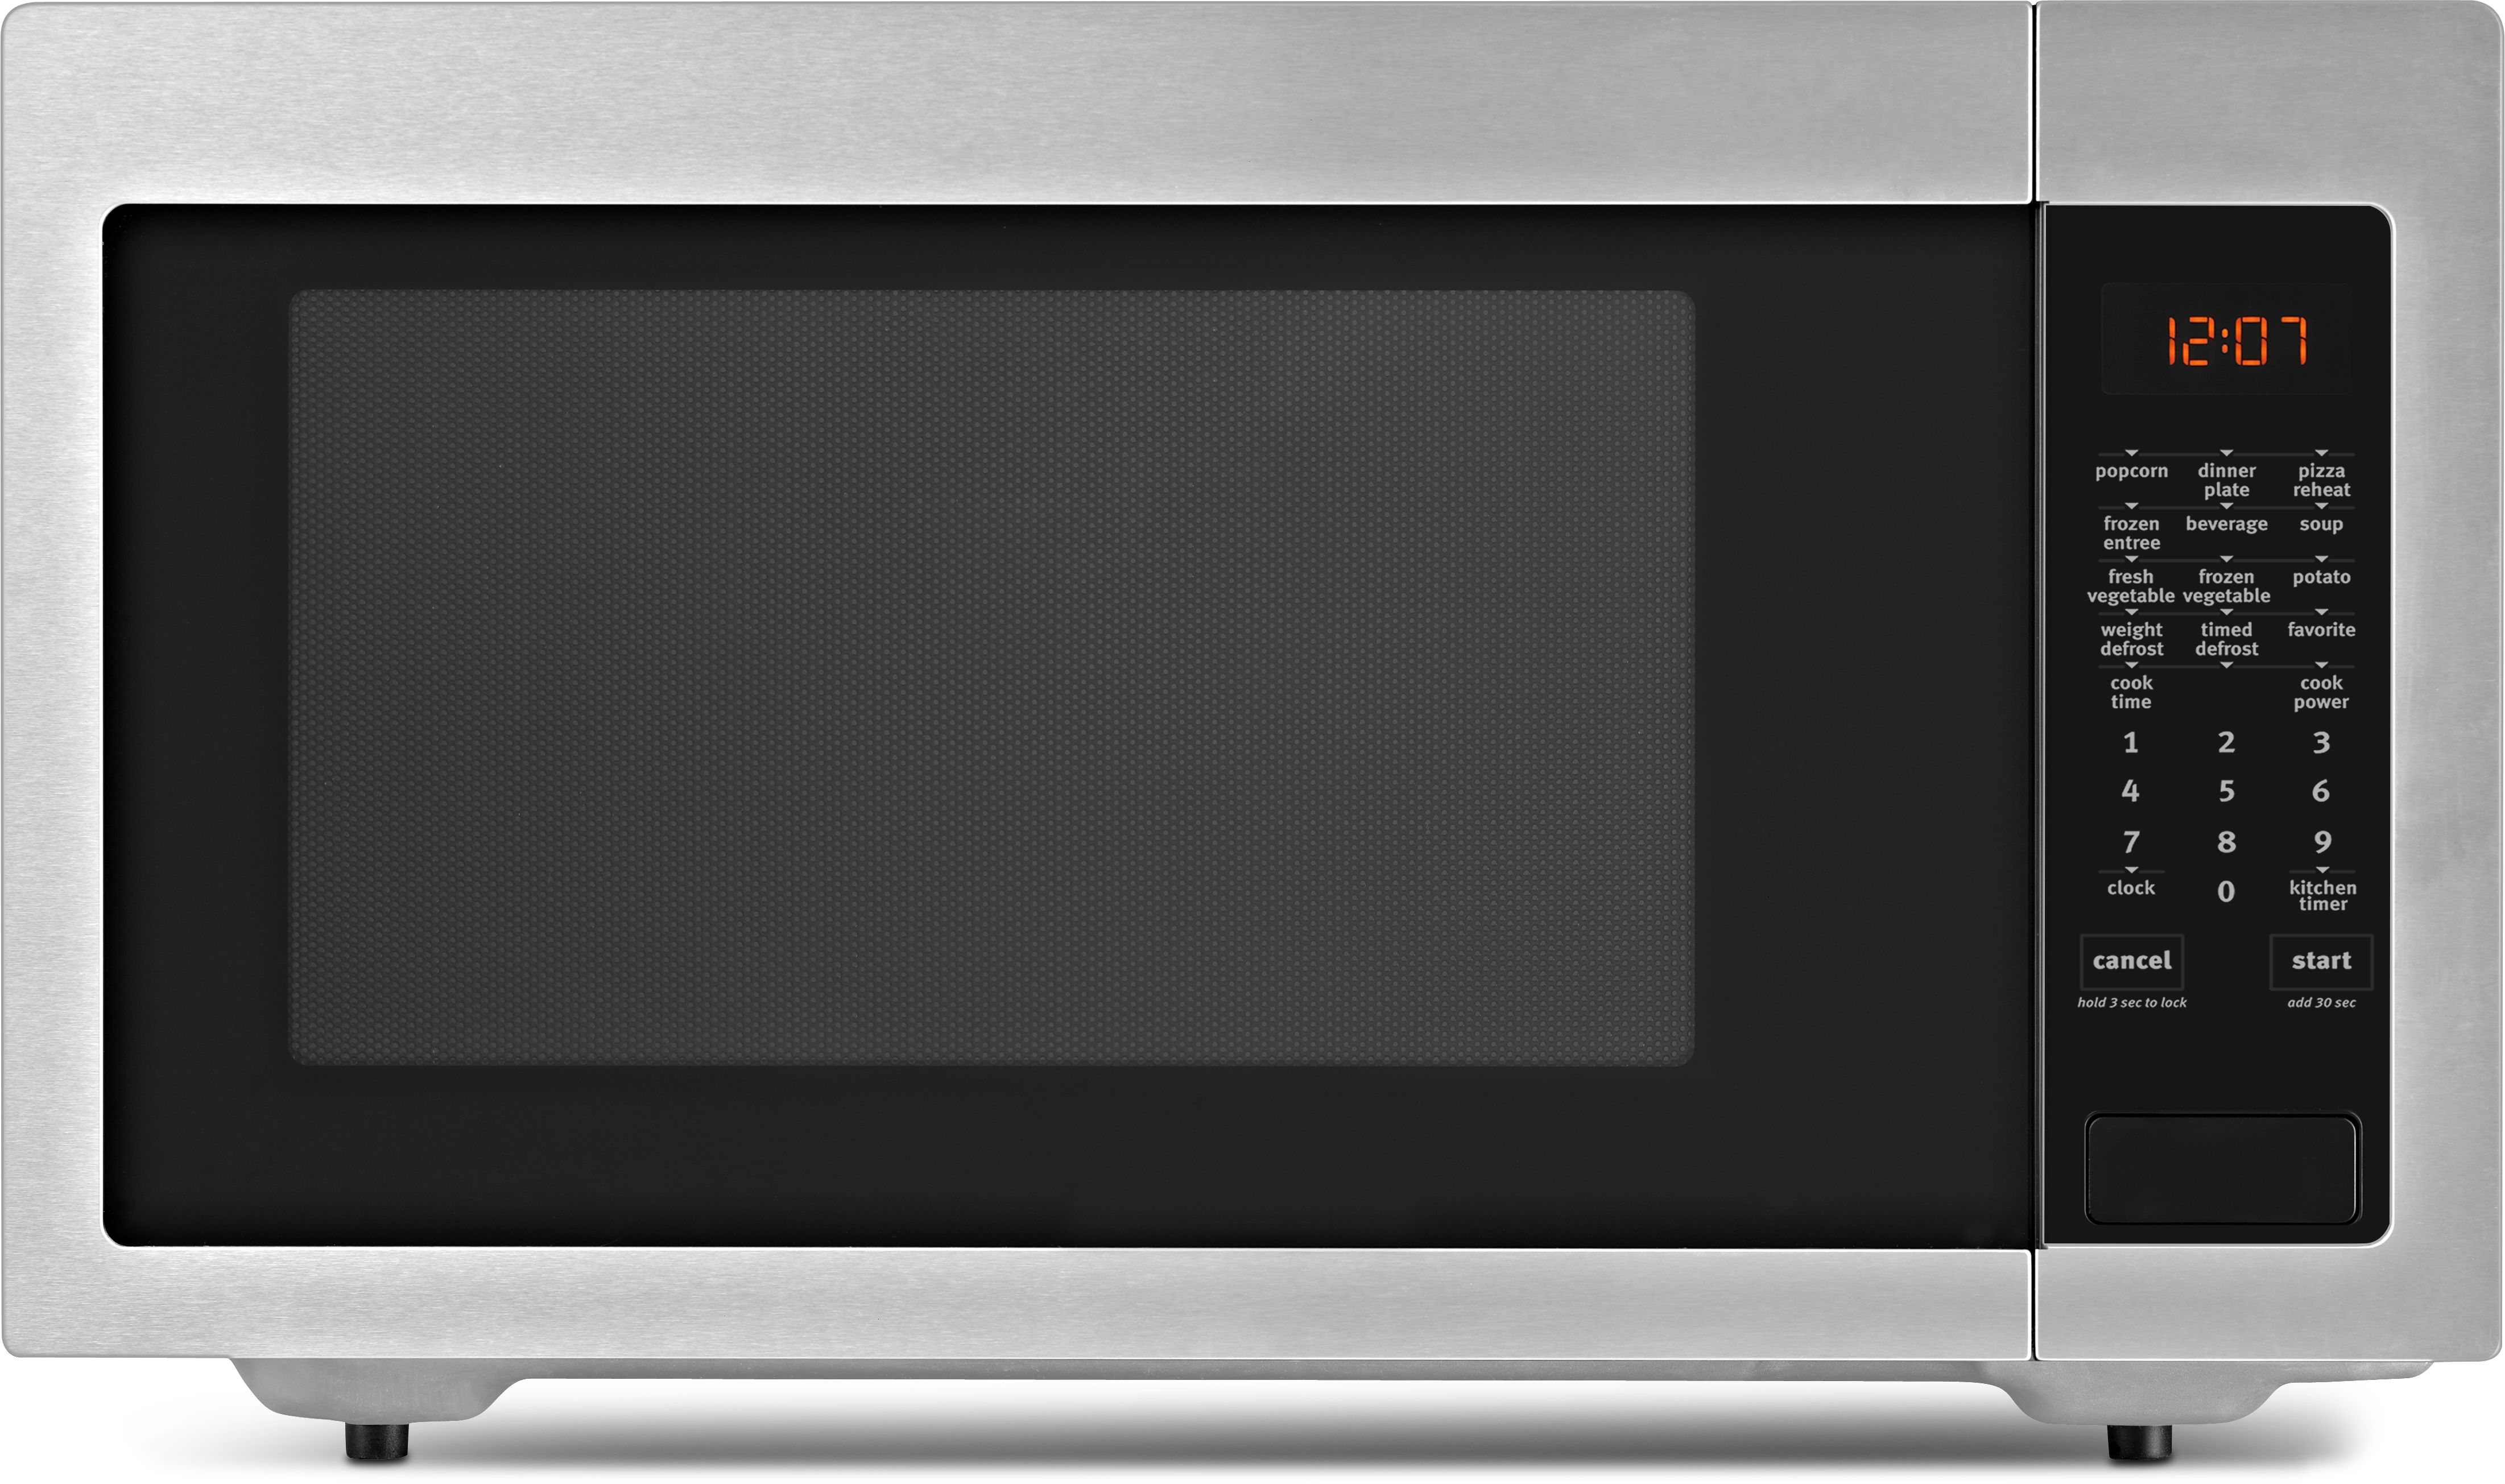 Whirlpool Countertop Microwave Umc5225g Wh